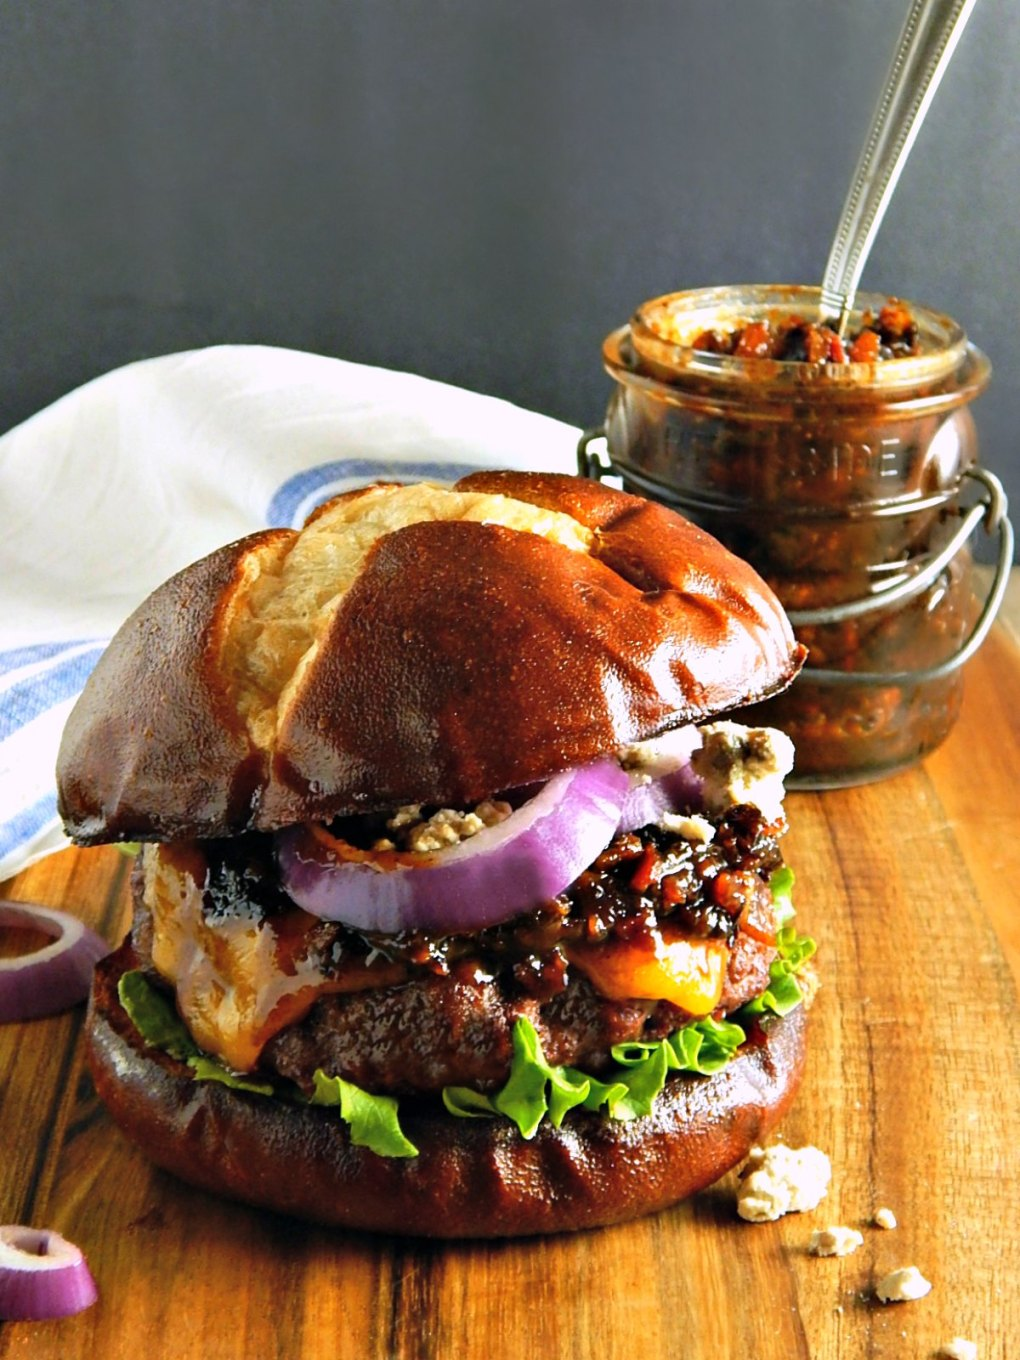 Oven Roasted Burgers